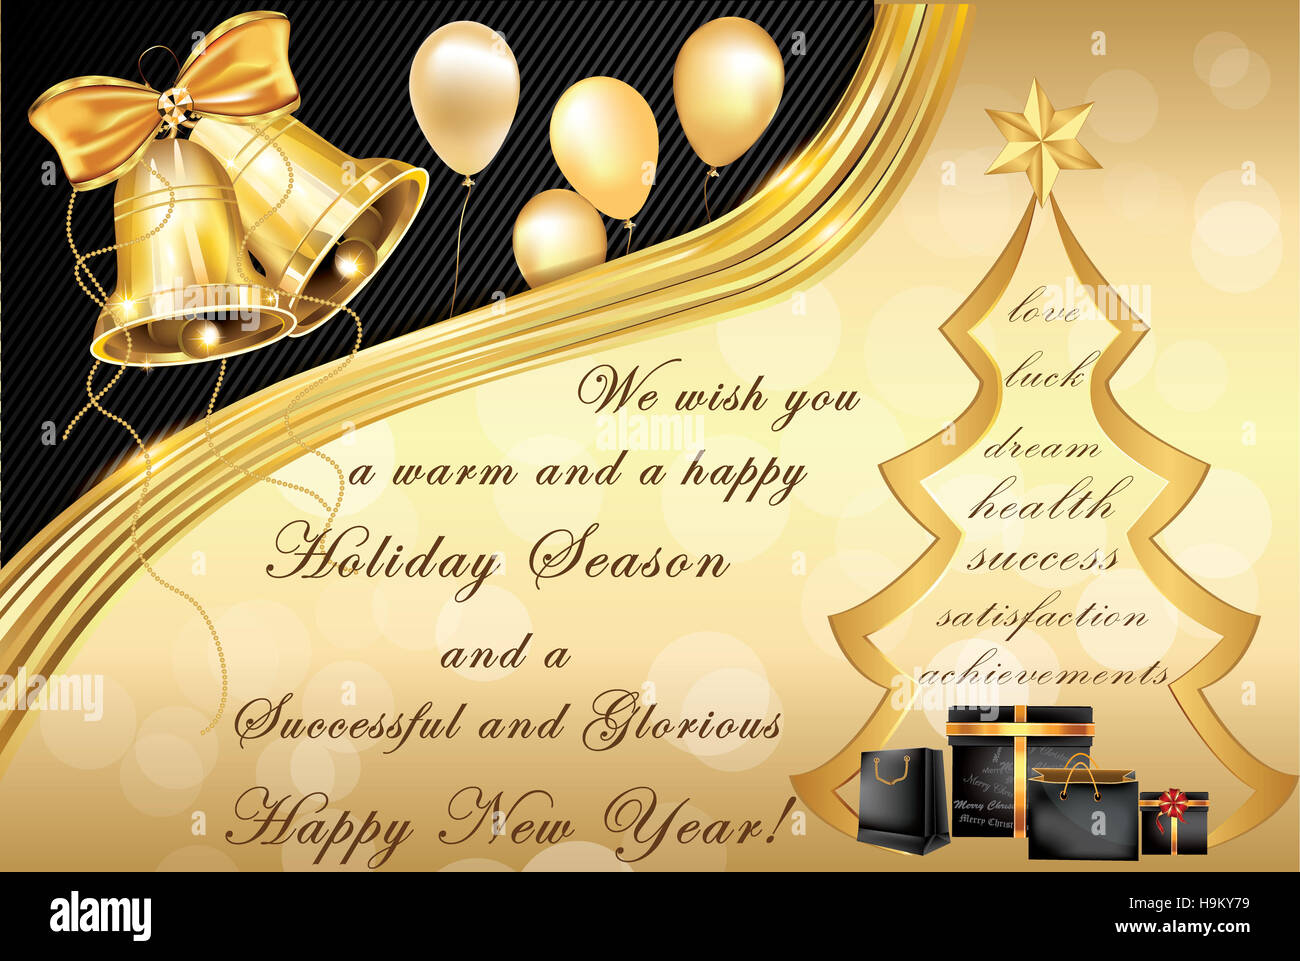 Elegant corporate christmas and new year greeting card contains elegant corporate christmas and new year greeting card contains jingle bells christmas tree gifts and warm wishes for winter kristyandbryce Images